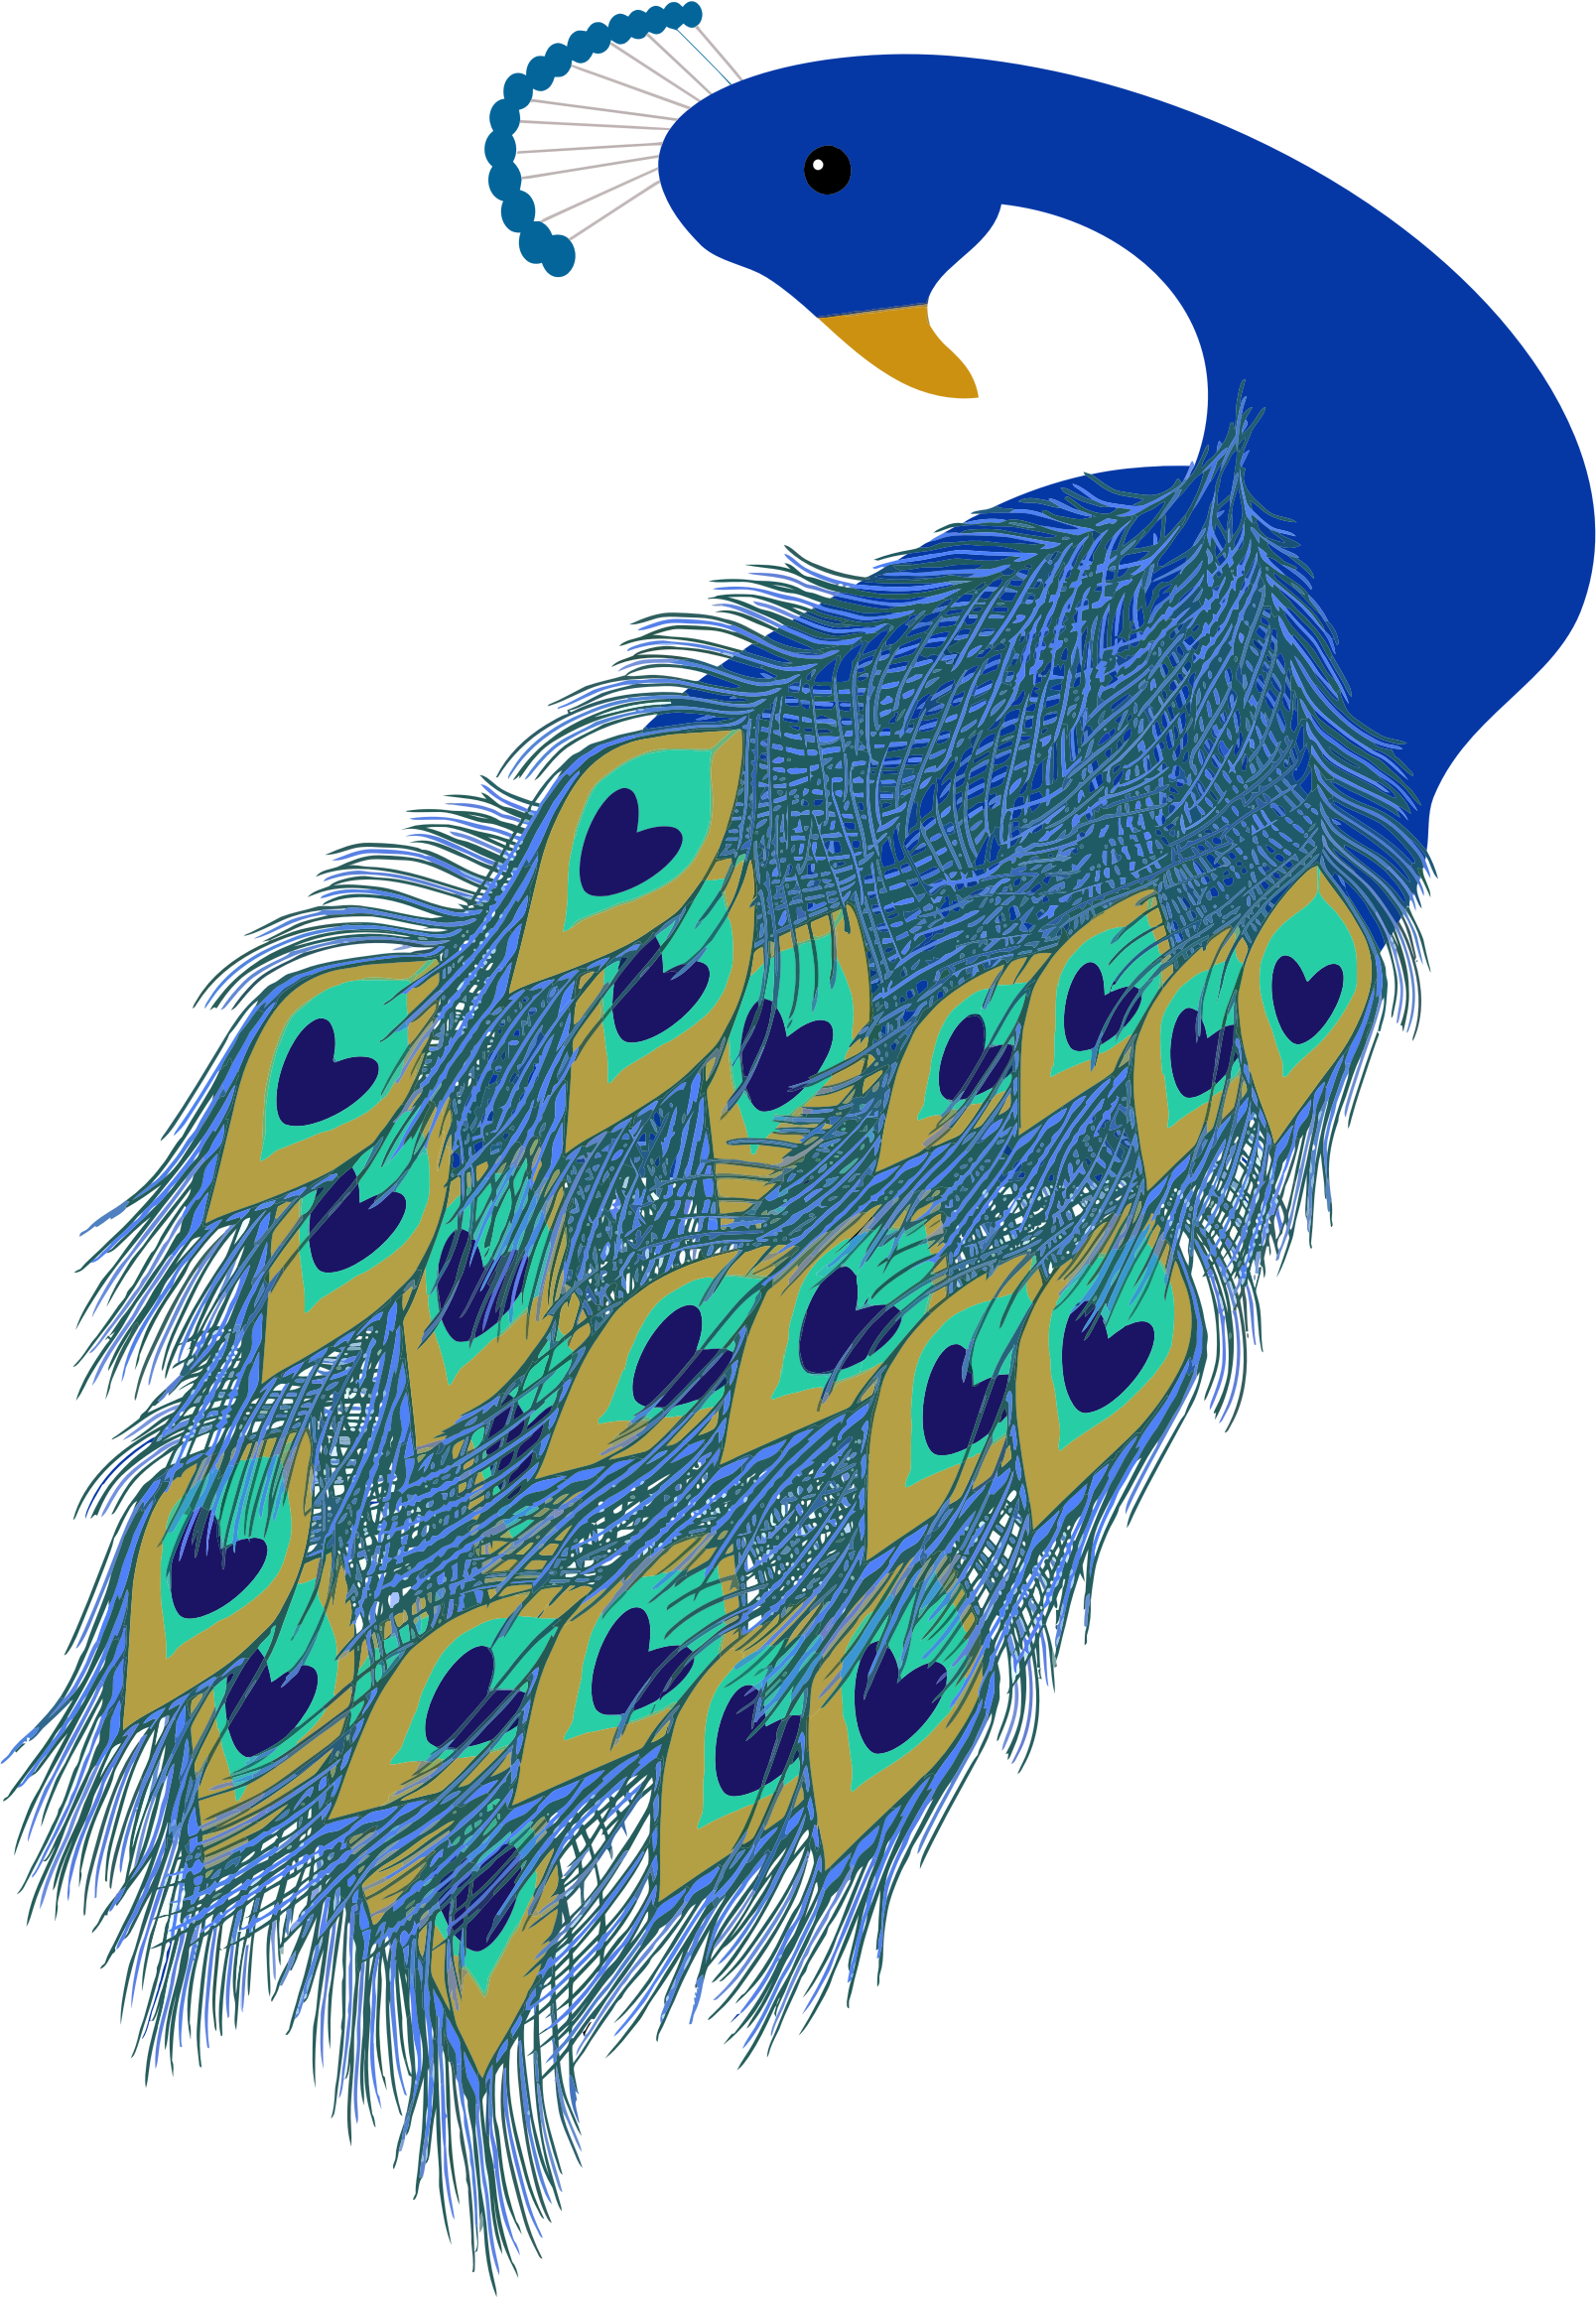 Peacock Illustration by GDJ